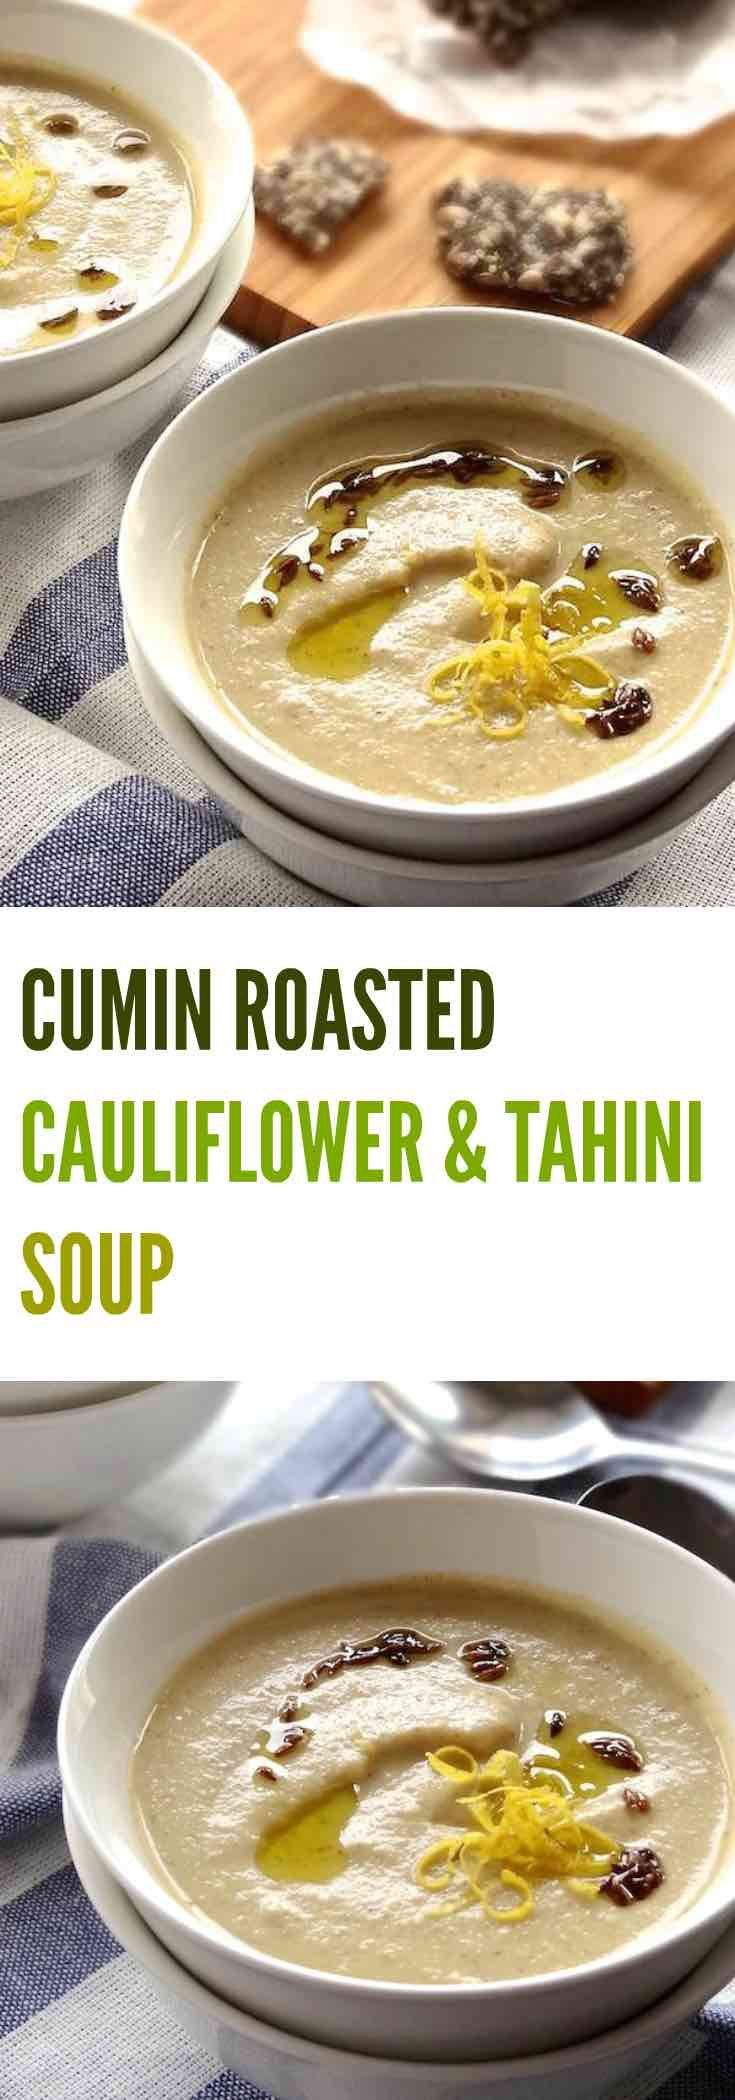 This CUMIN ROASTED CAULIFLOWER & TAHINI SOUP is velvety creamy with ...